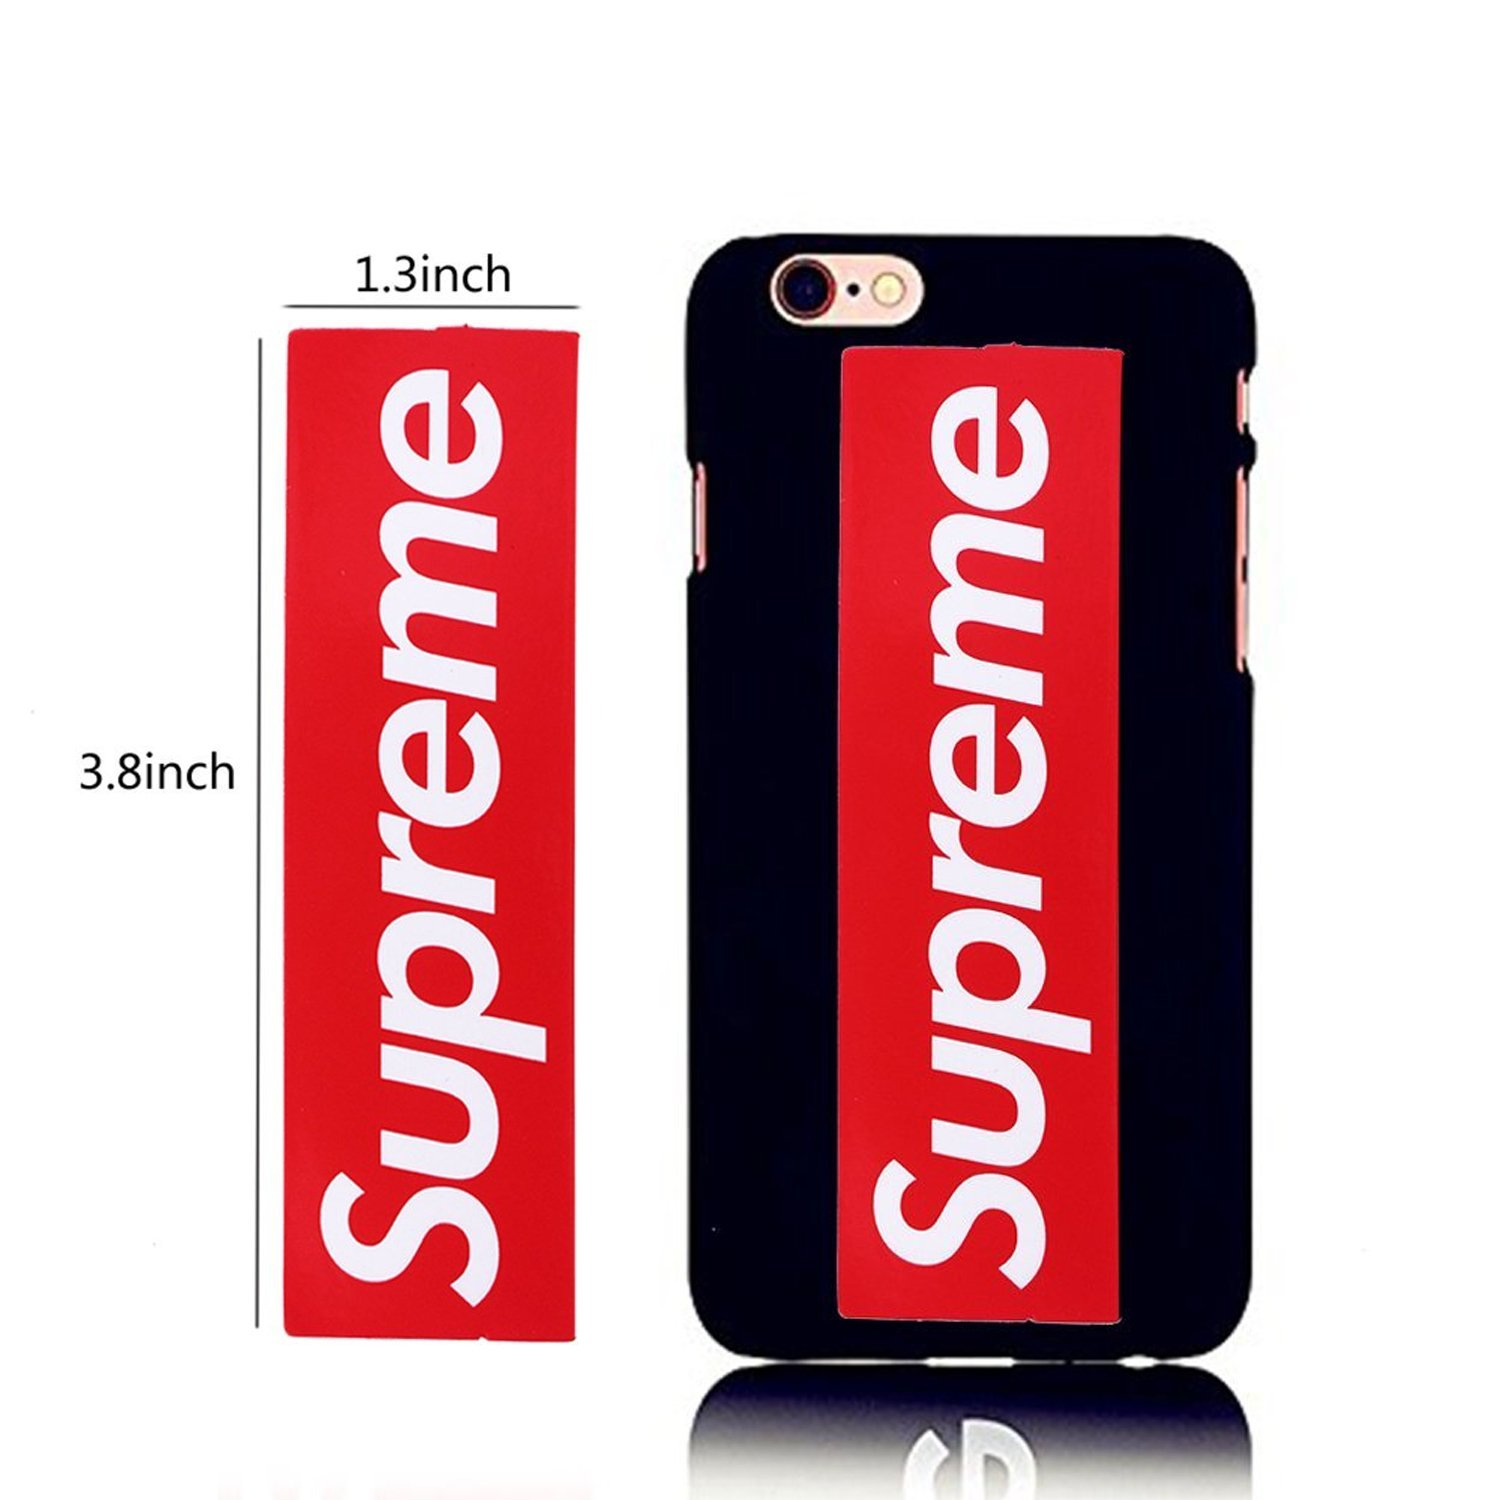 Supreme Sticker 100 Pcs Waterproof And Oil Proof Decal For Skateboard Laptop Toy Car